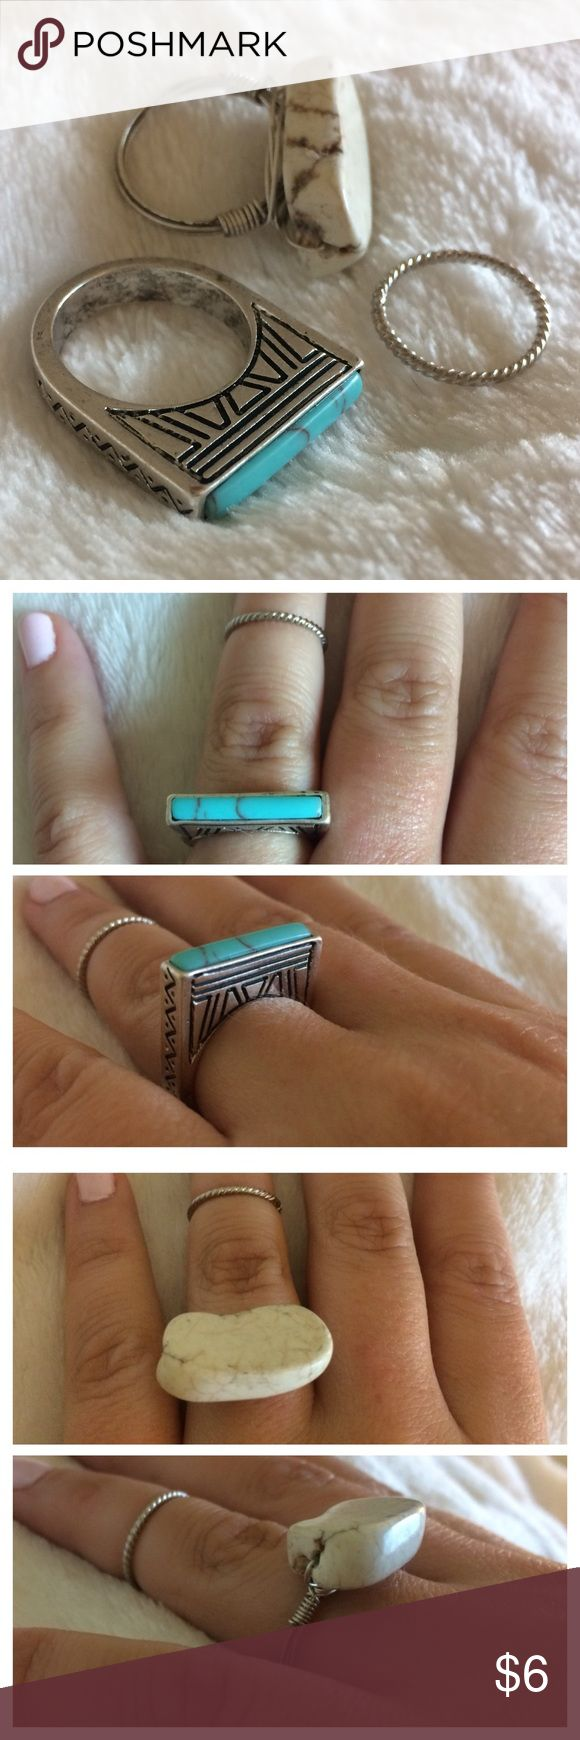 Set of 3 boho festival rings Set of 3 silver boho festival rings. 1.) silver wrapped wire with white stone, 2.) etched silver with rectangle turquoise stone, and 3.) silver rope midi ring. Approx size 7. EUC. Urban Outfitters Jewelry Rings